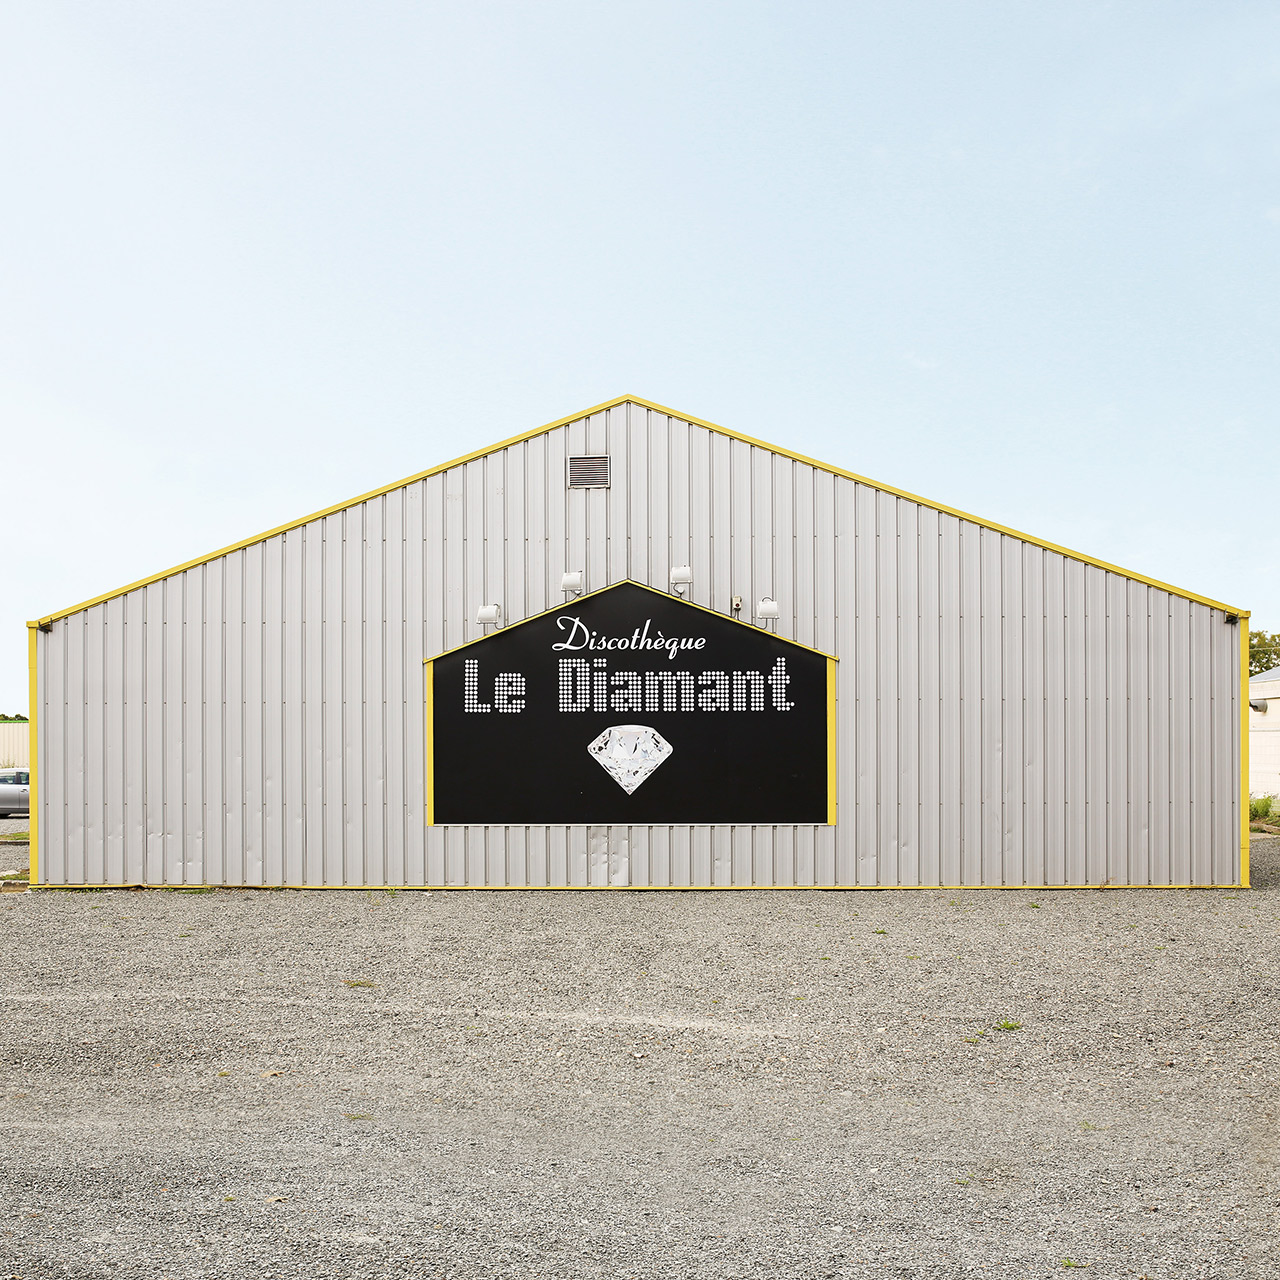 « Le Diamant - 53150 Neau (Mayenne) ». Photograph by François Prost. After Party series, 2011-2017. Courtesy François Prost.